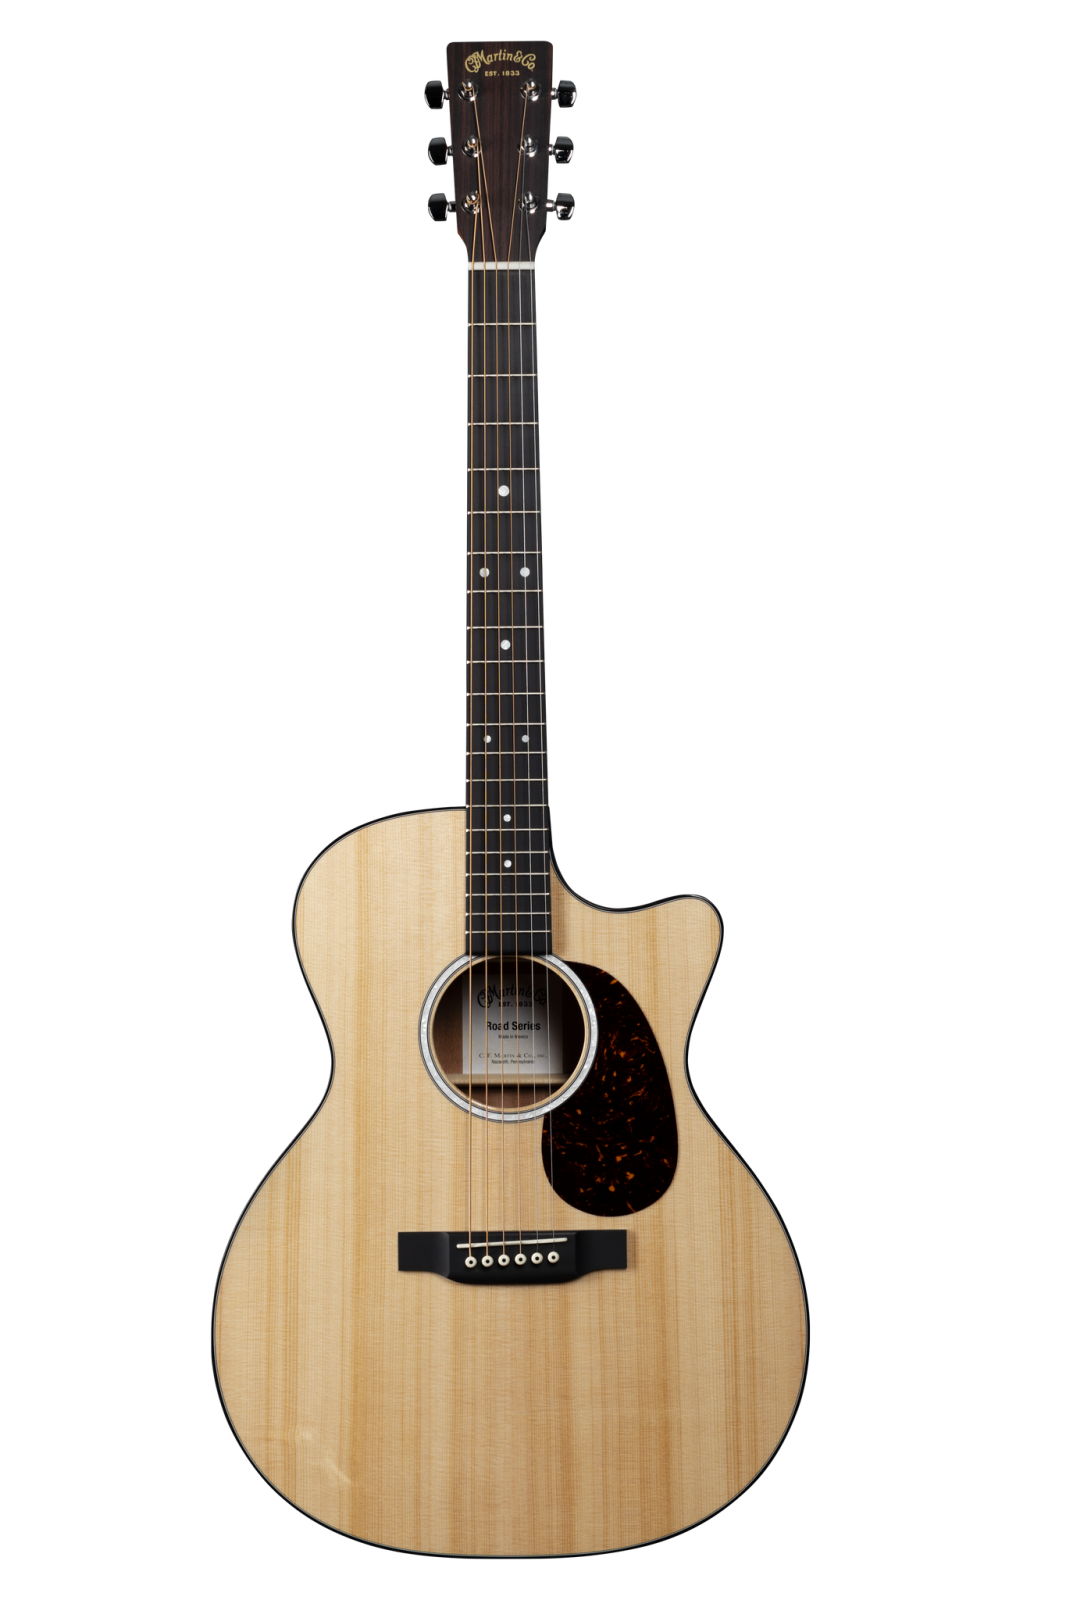 Martin GPC-11E Road Series Acoustic Electric Guitar